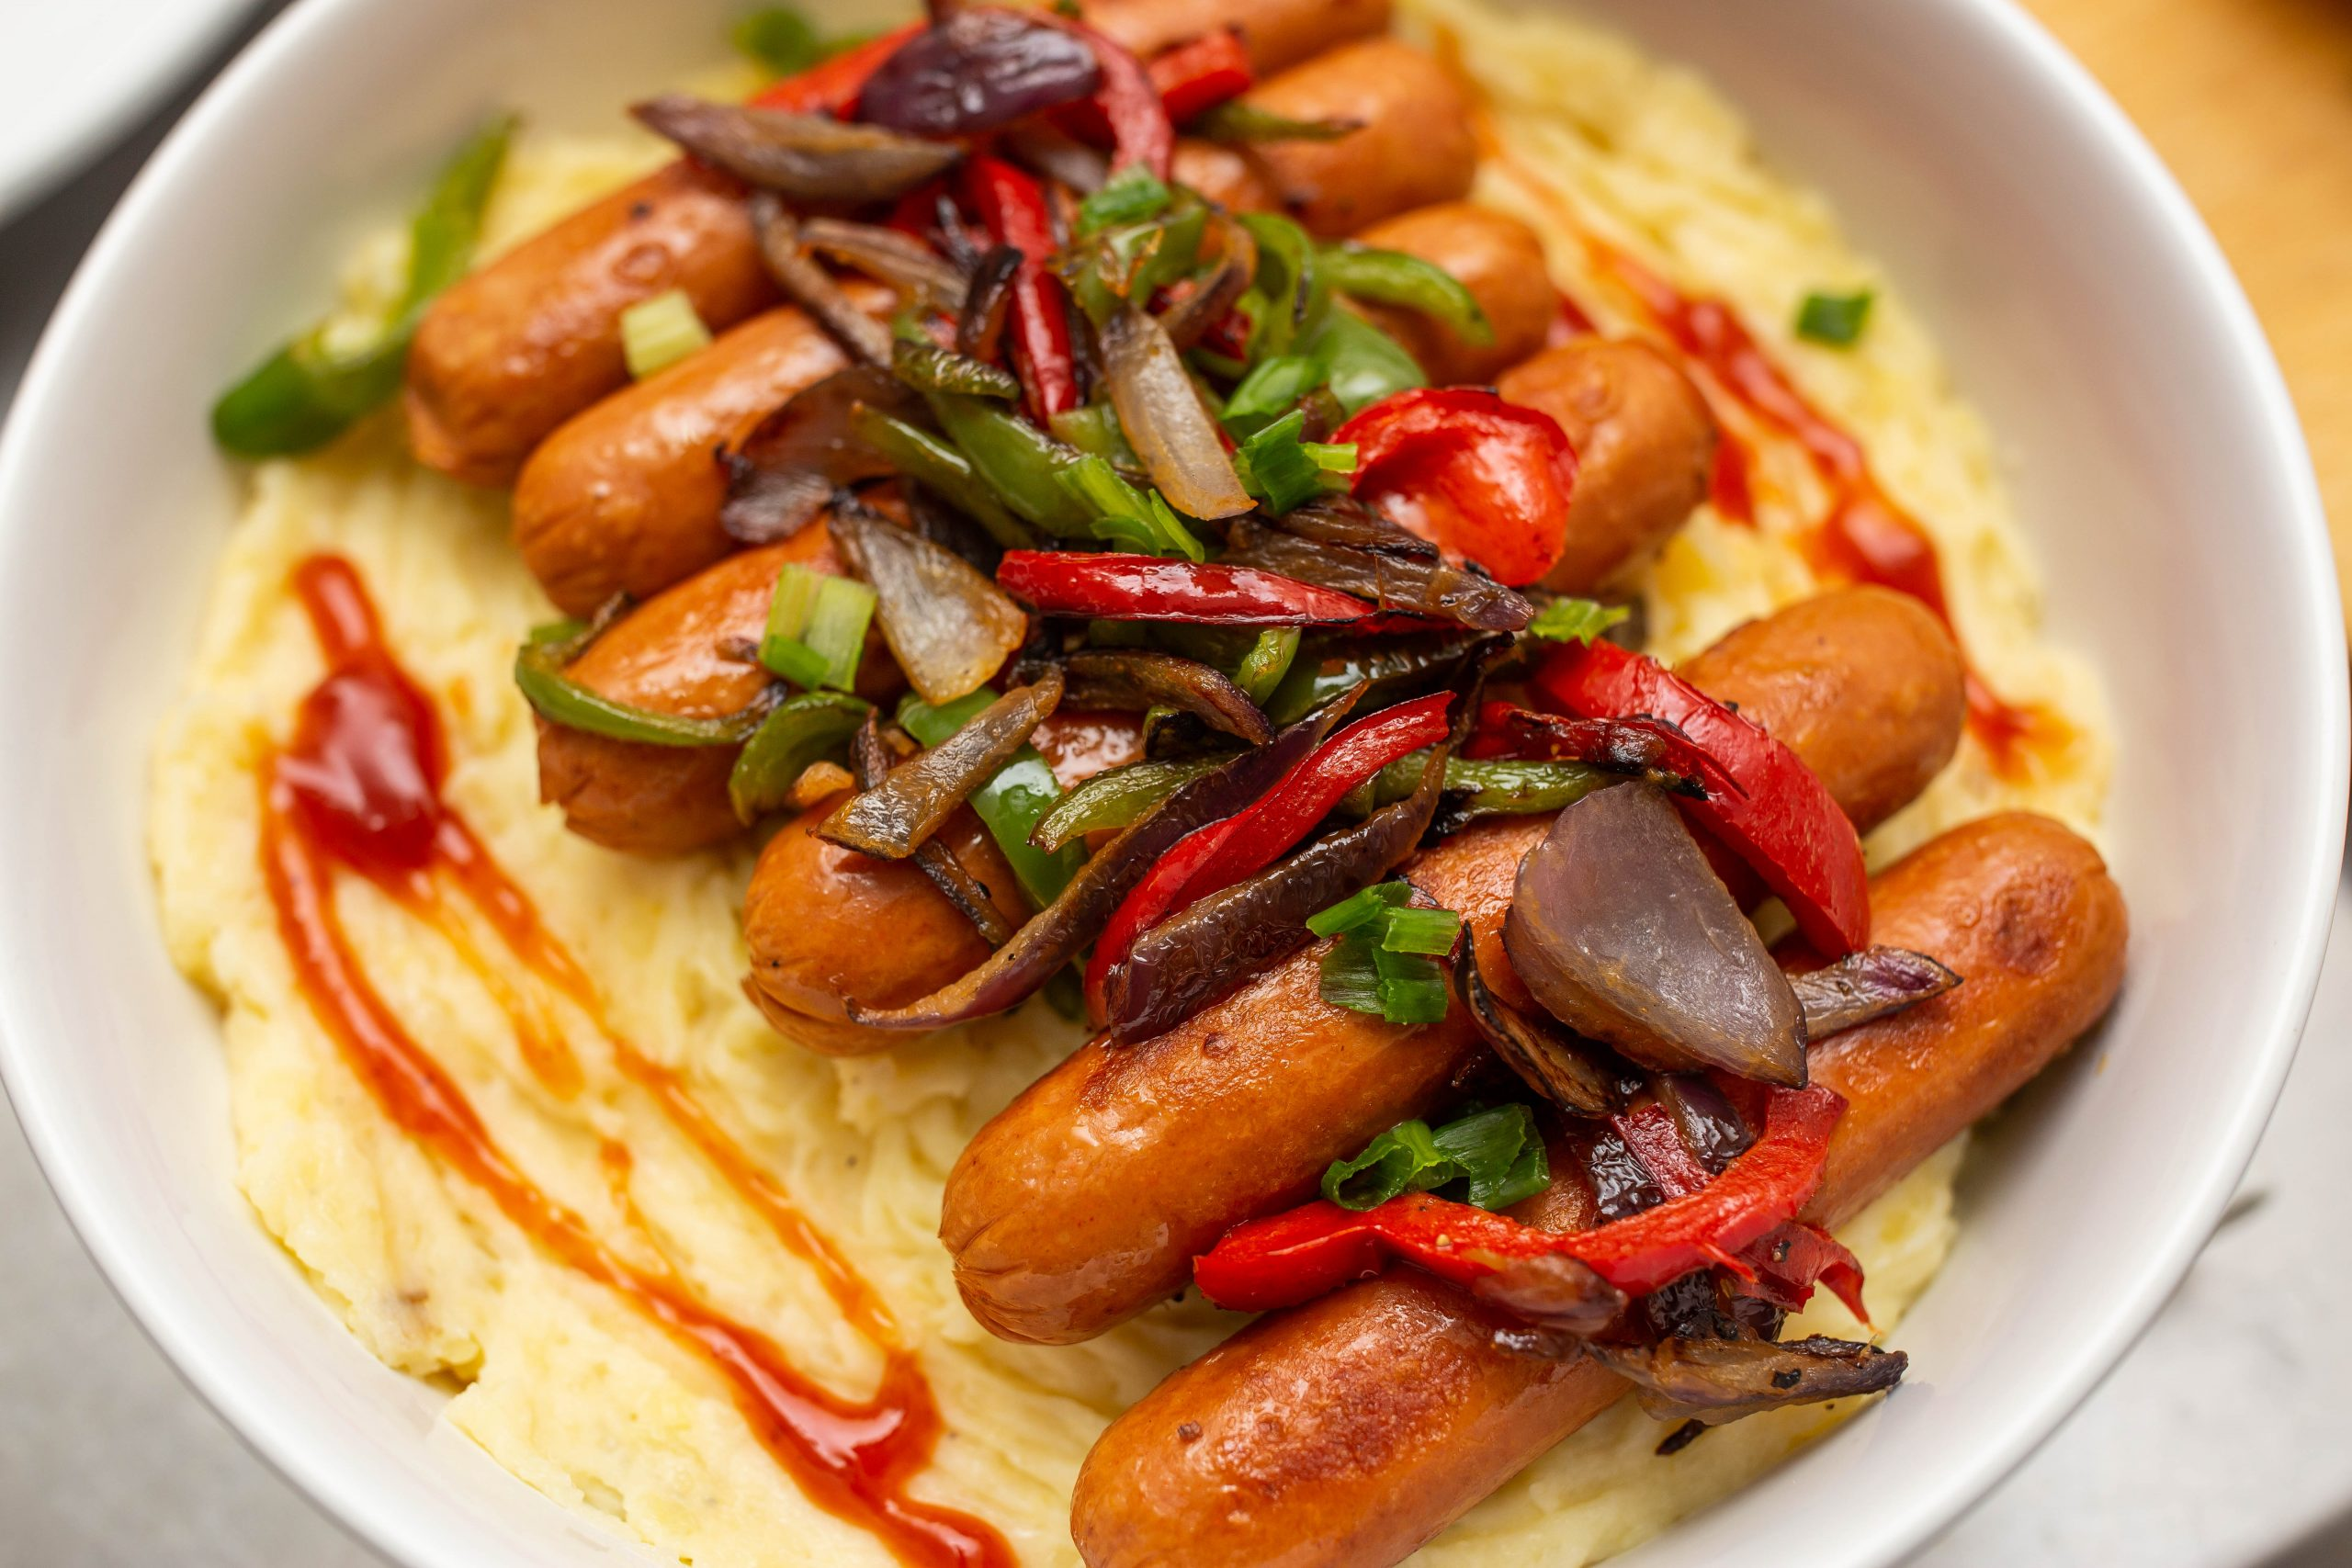 Pan Seared Chicken Franks with Creamy Mashed Potatoes